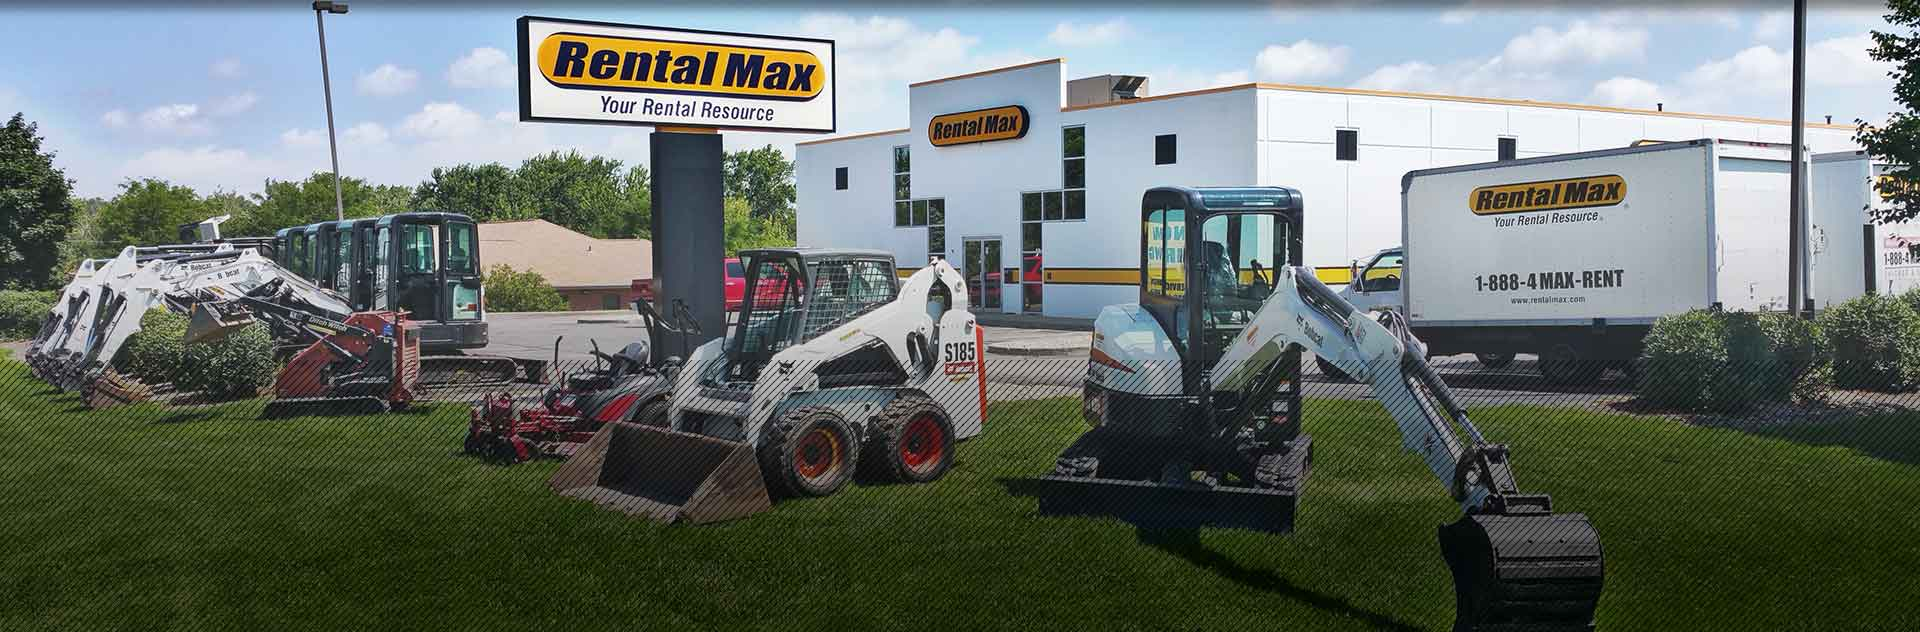 RentalMax - Equipment Rentals & Party Rentals serving